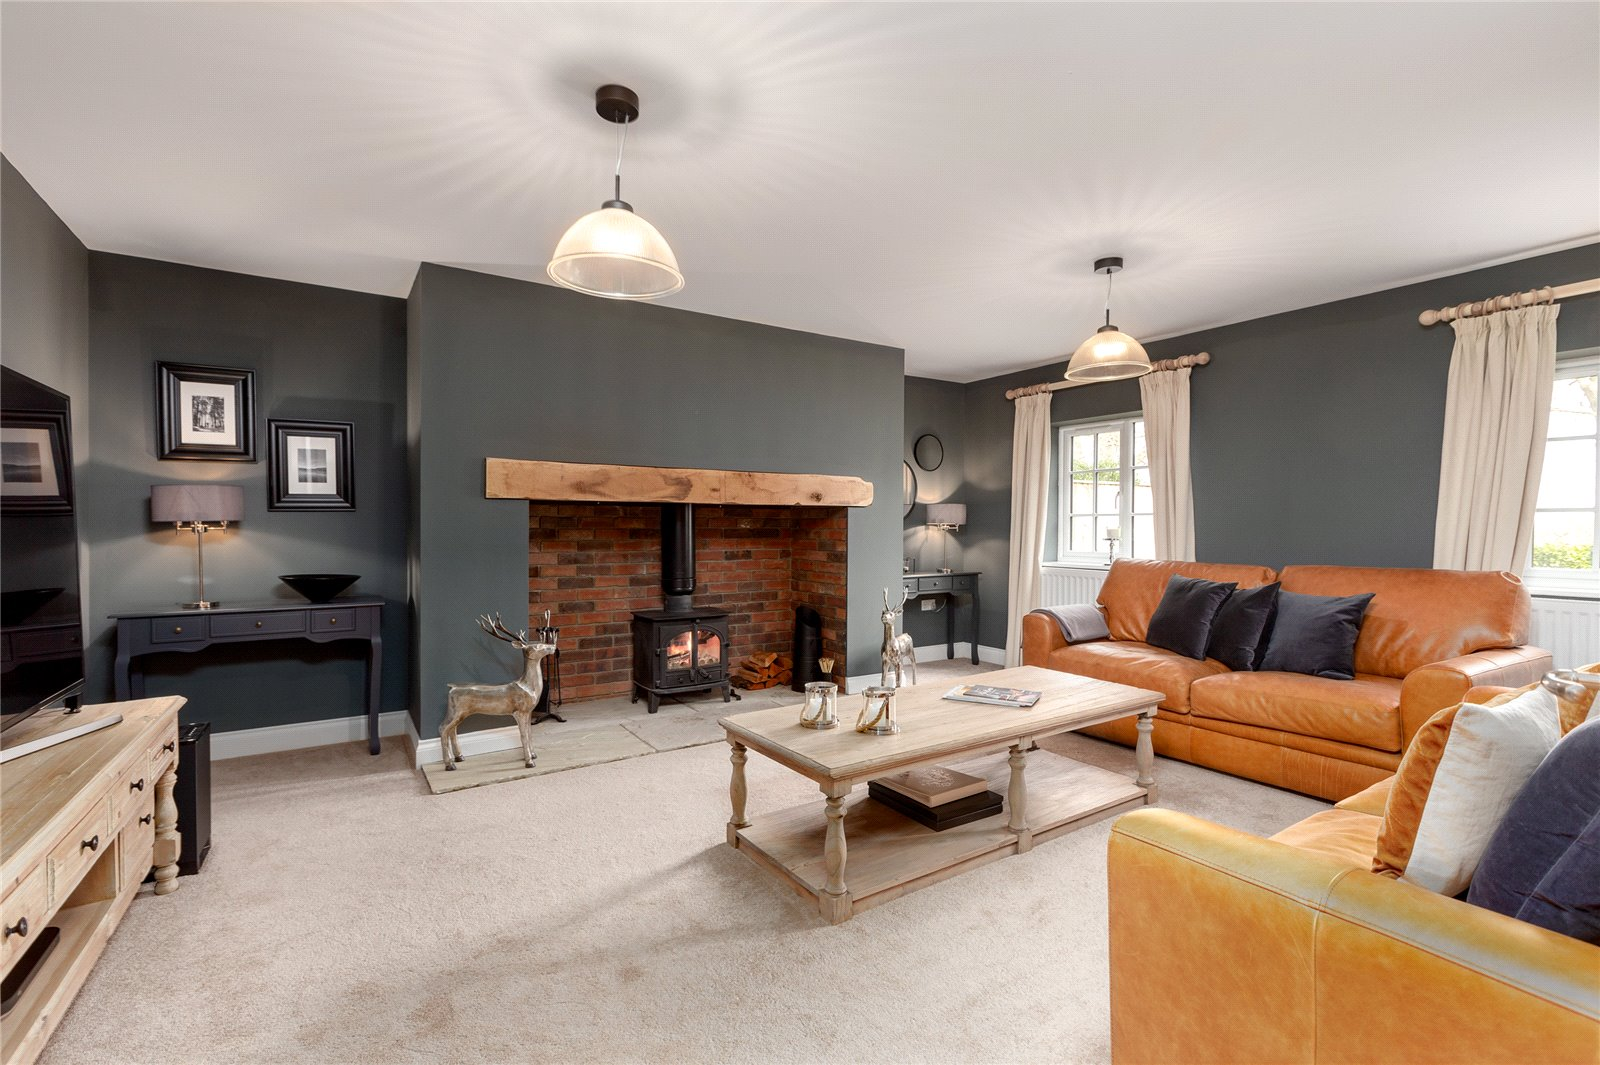 6 bed house for sale in Ladgate Lane, Middlesbrough  - Property Image 5